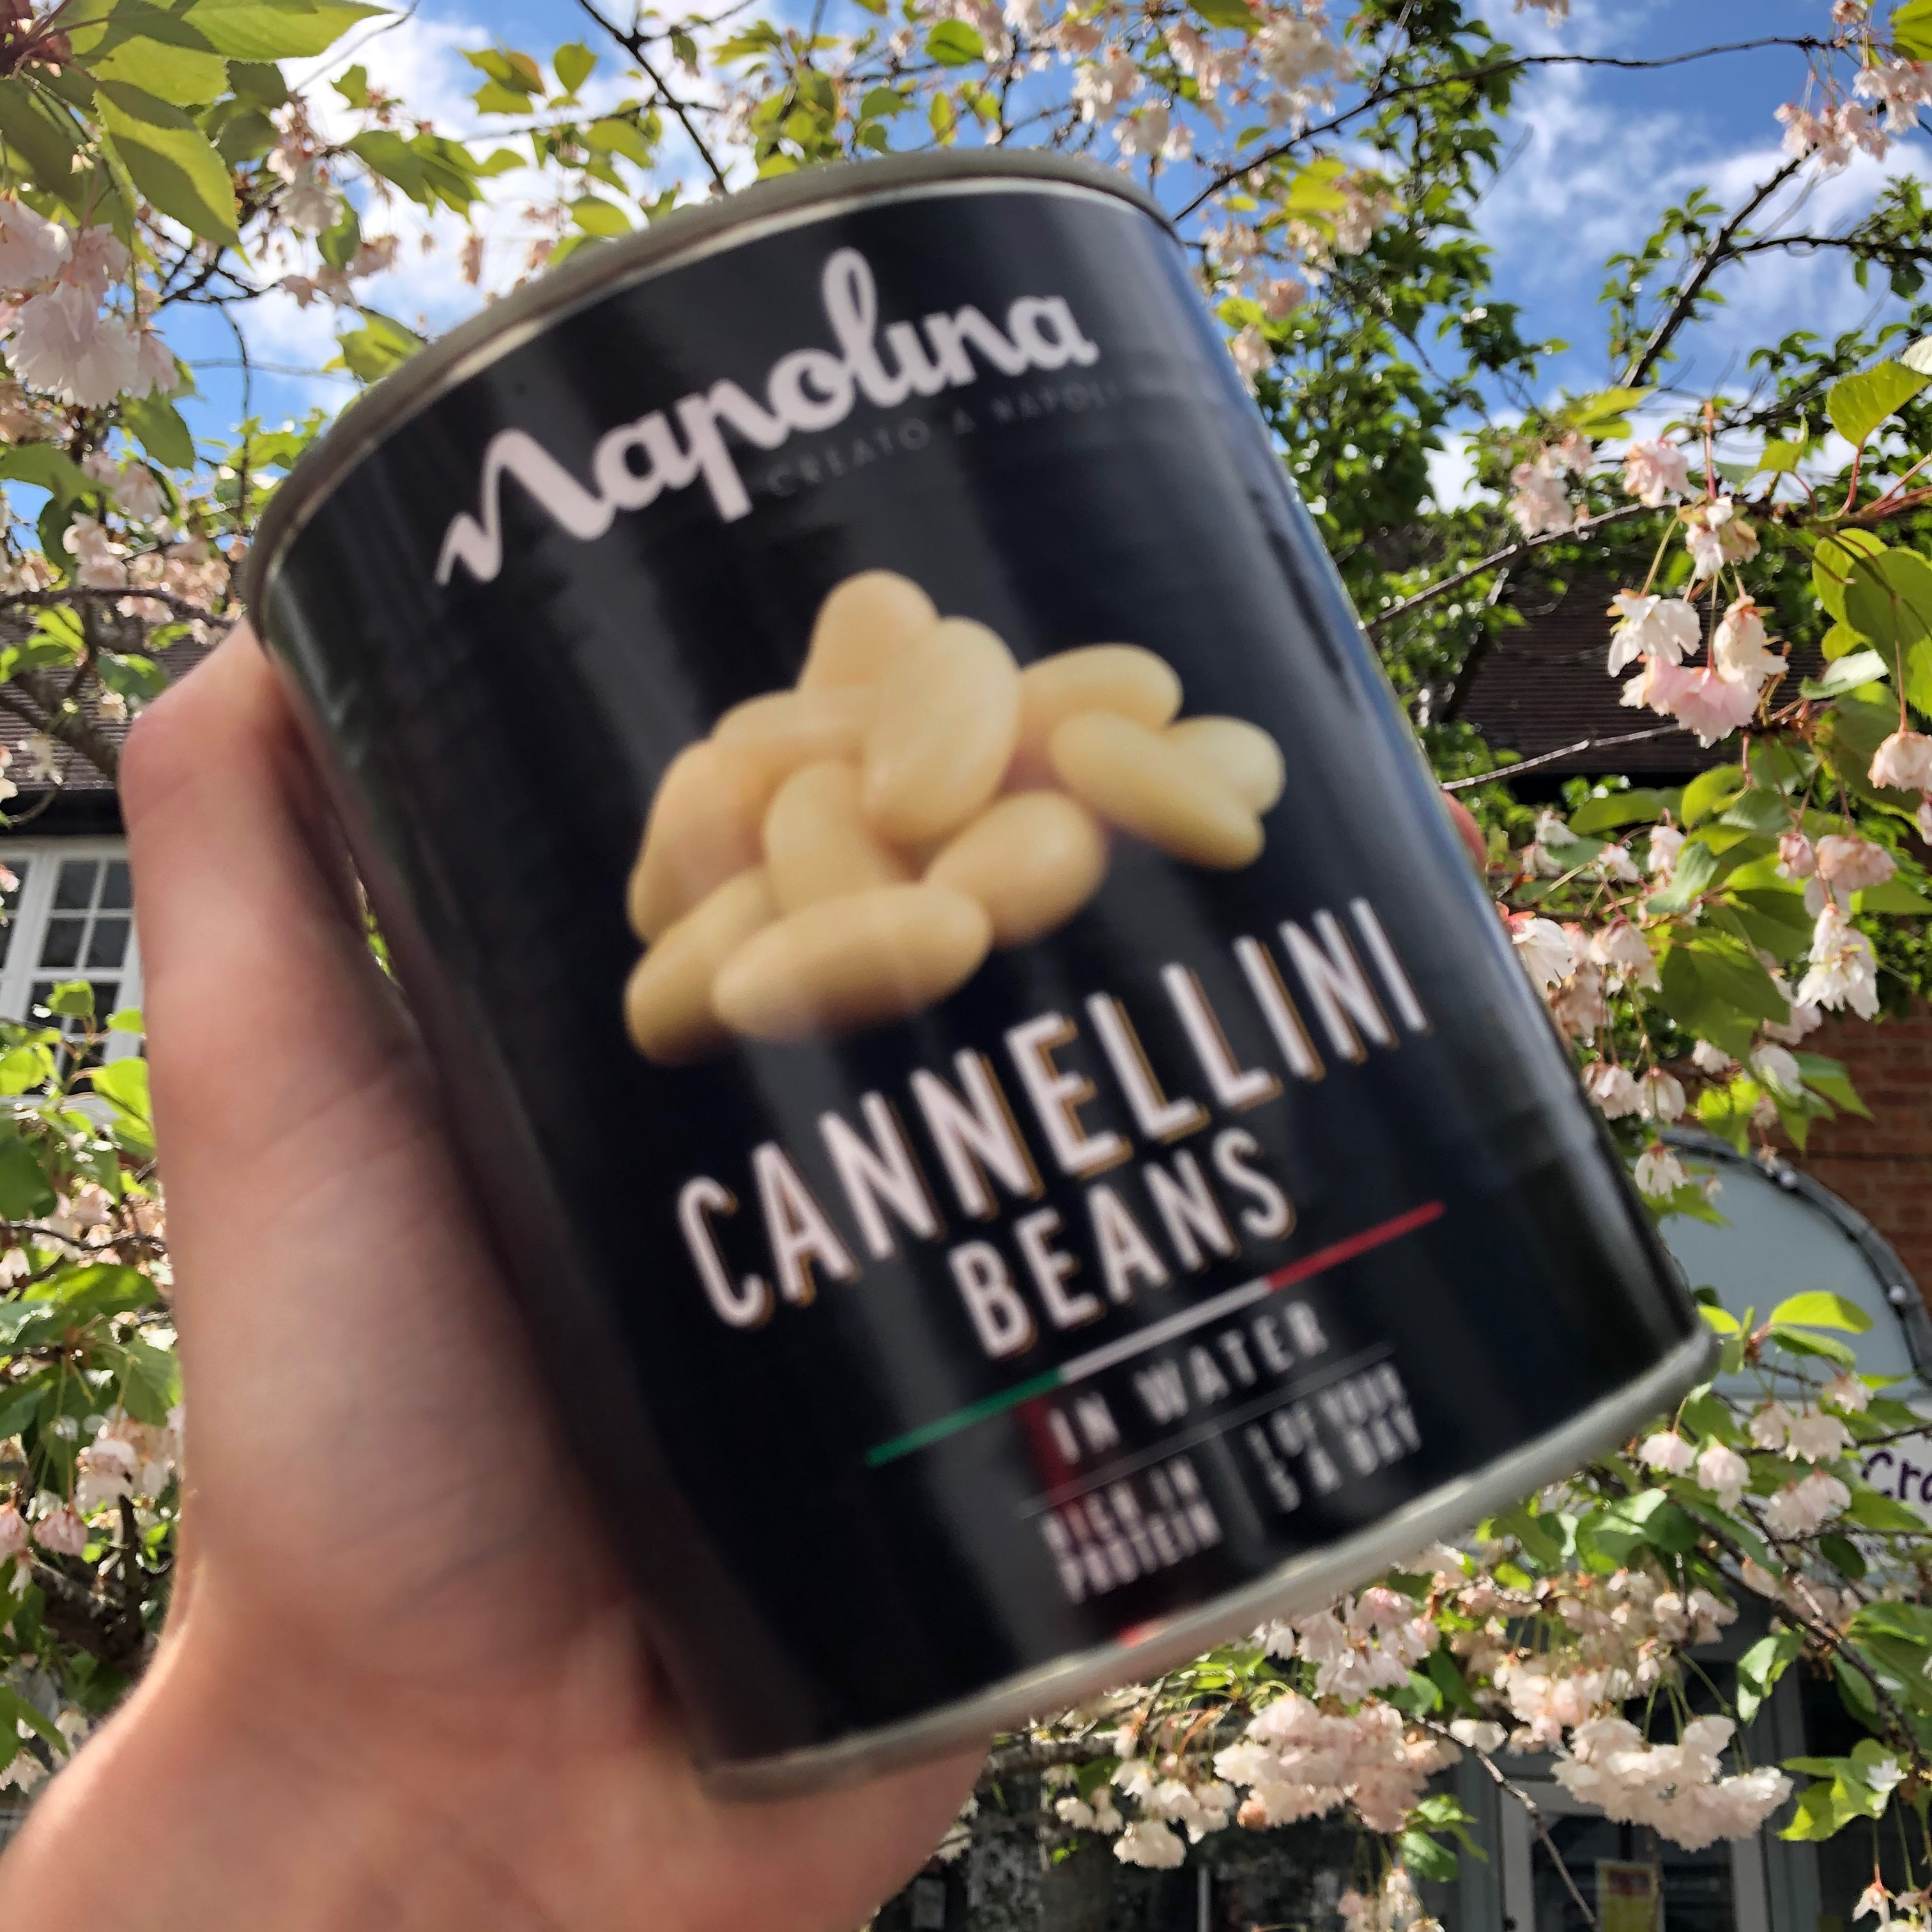 Napolina Cannellini Beans (800g)